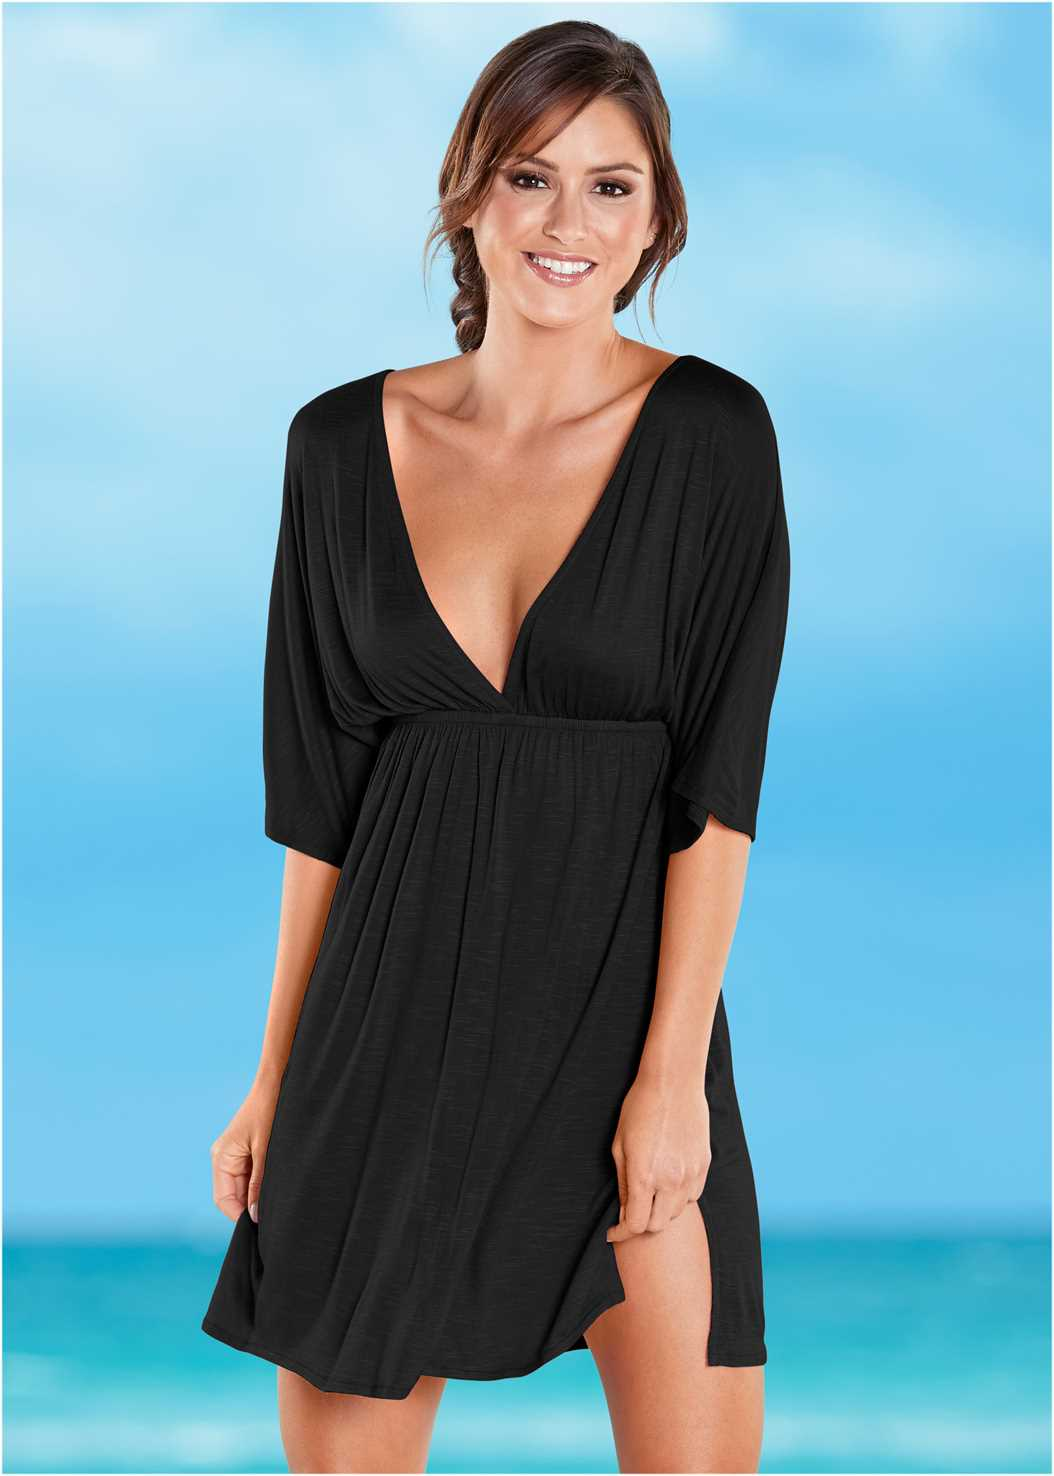 Deep V Cover-Up Tunic,Marilyn Underwire Push Up Halter Top,Wrapped Mid Rise Bottom,Beaded Crochet One-Piece